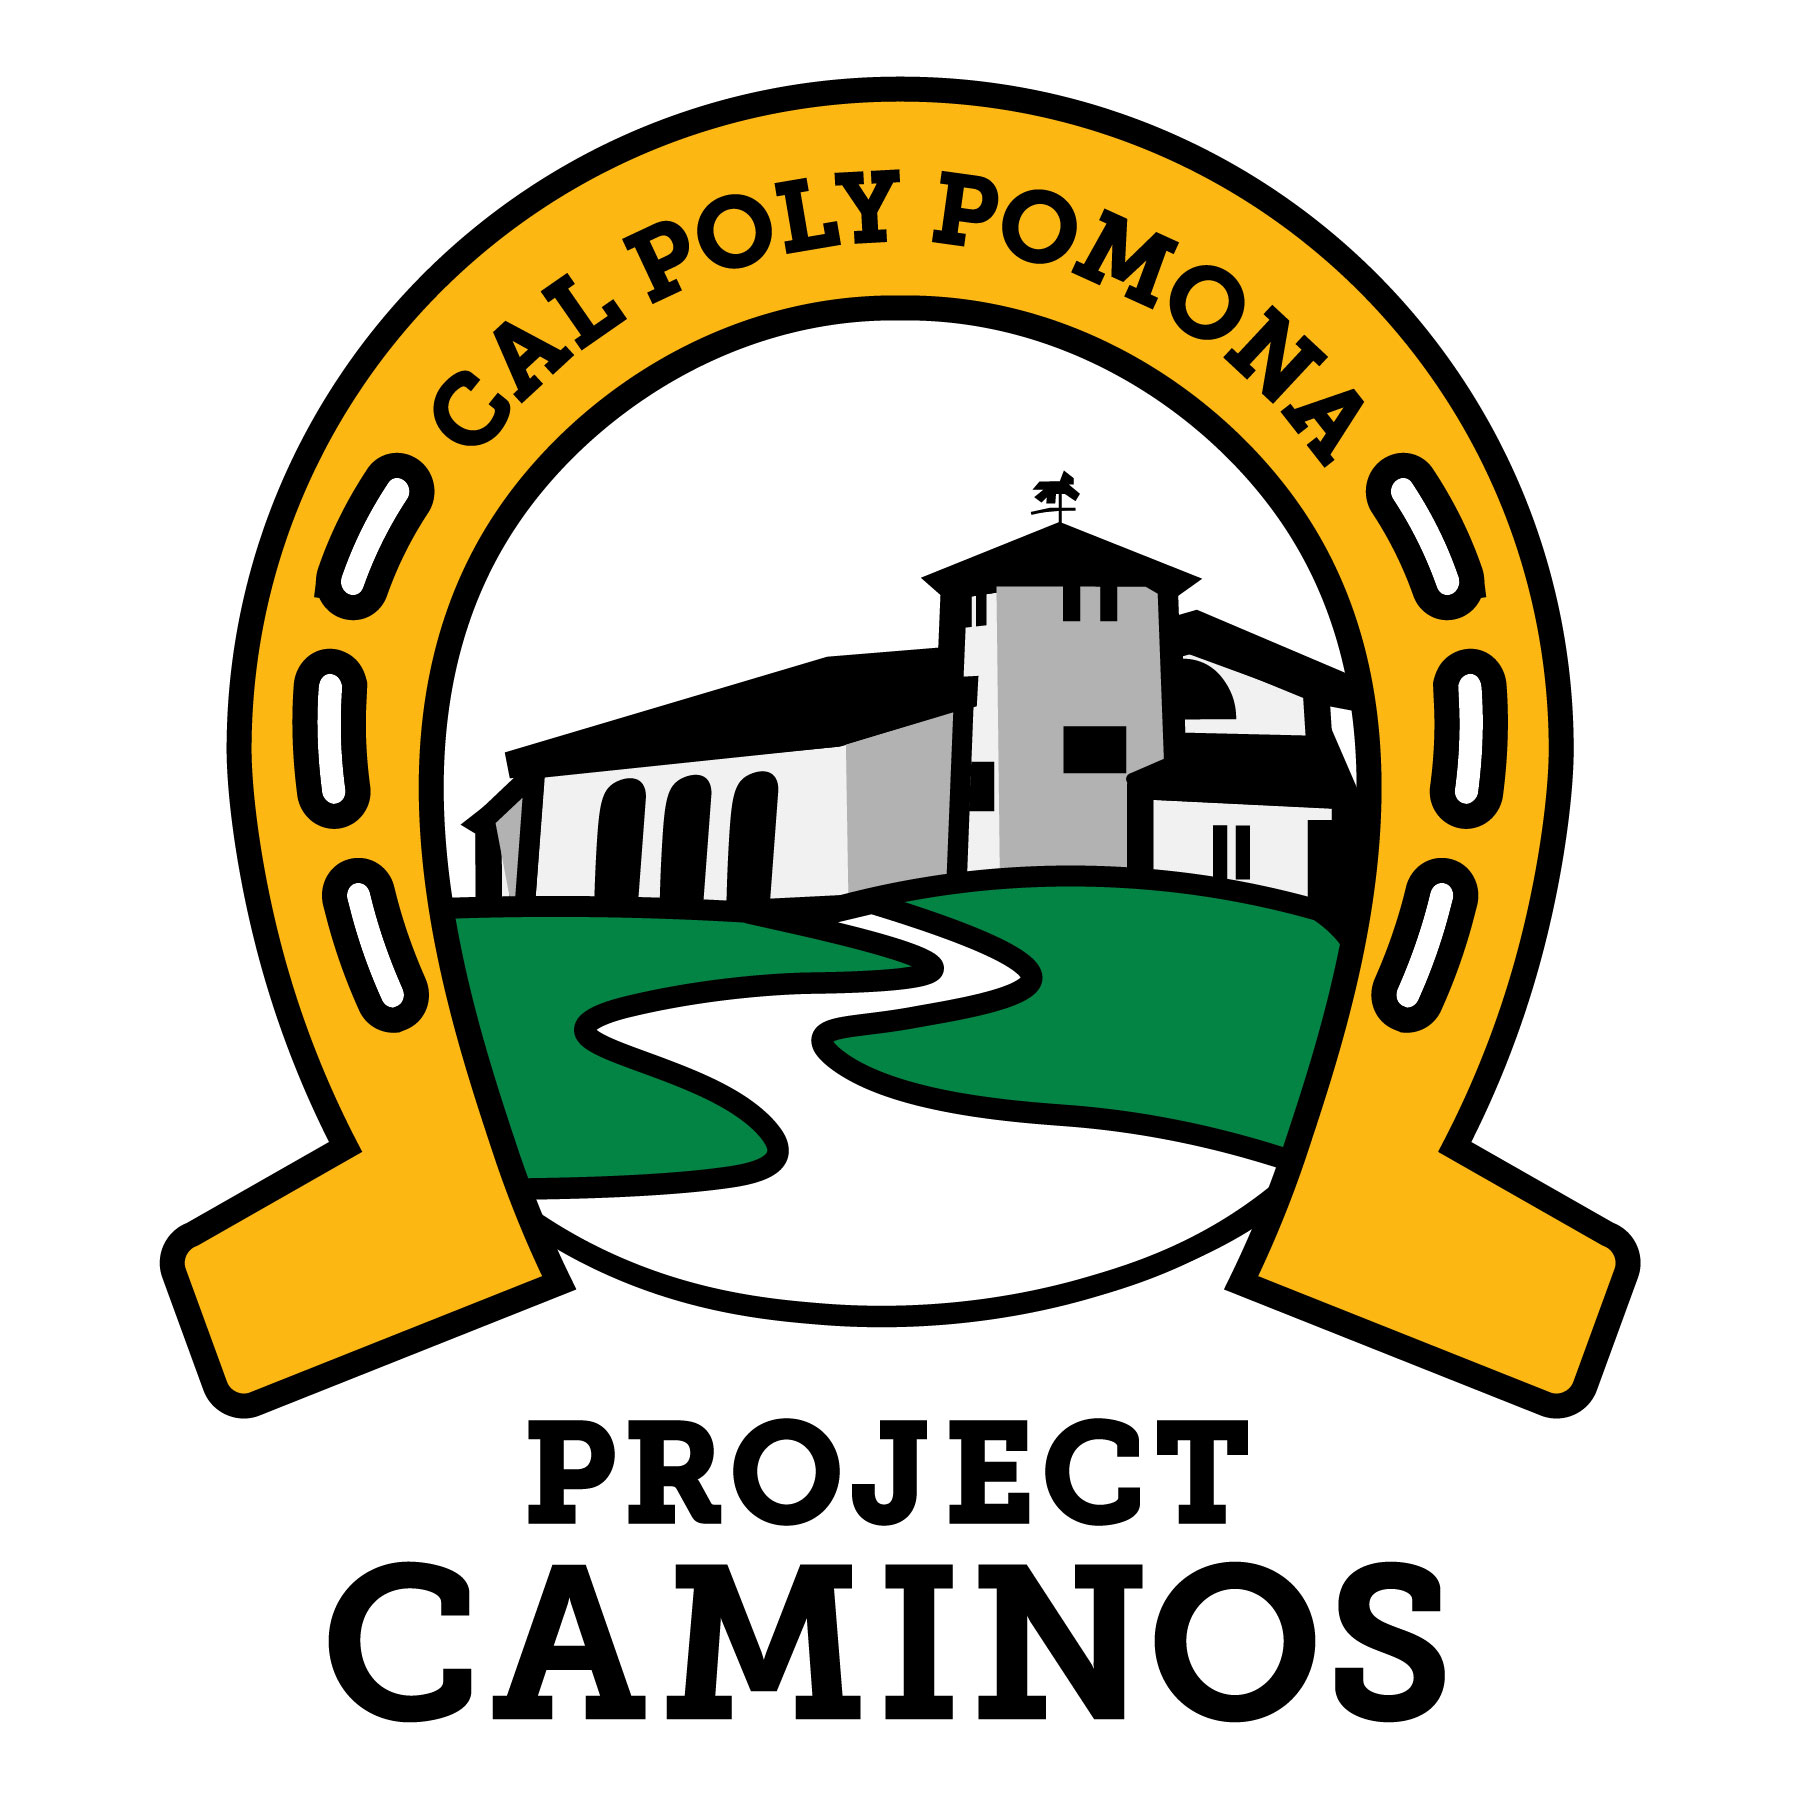 logo of project caminos; horse shoe with words Cal Poly Pomona arched; with image of old stables in the middle